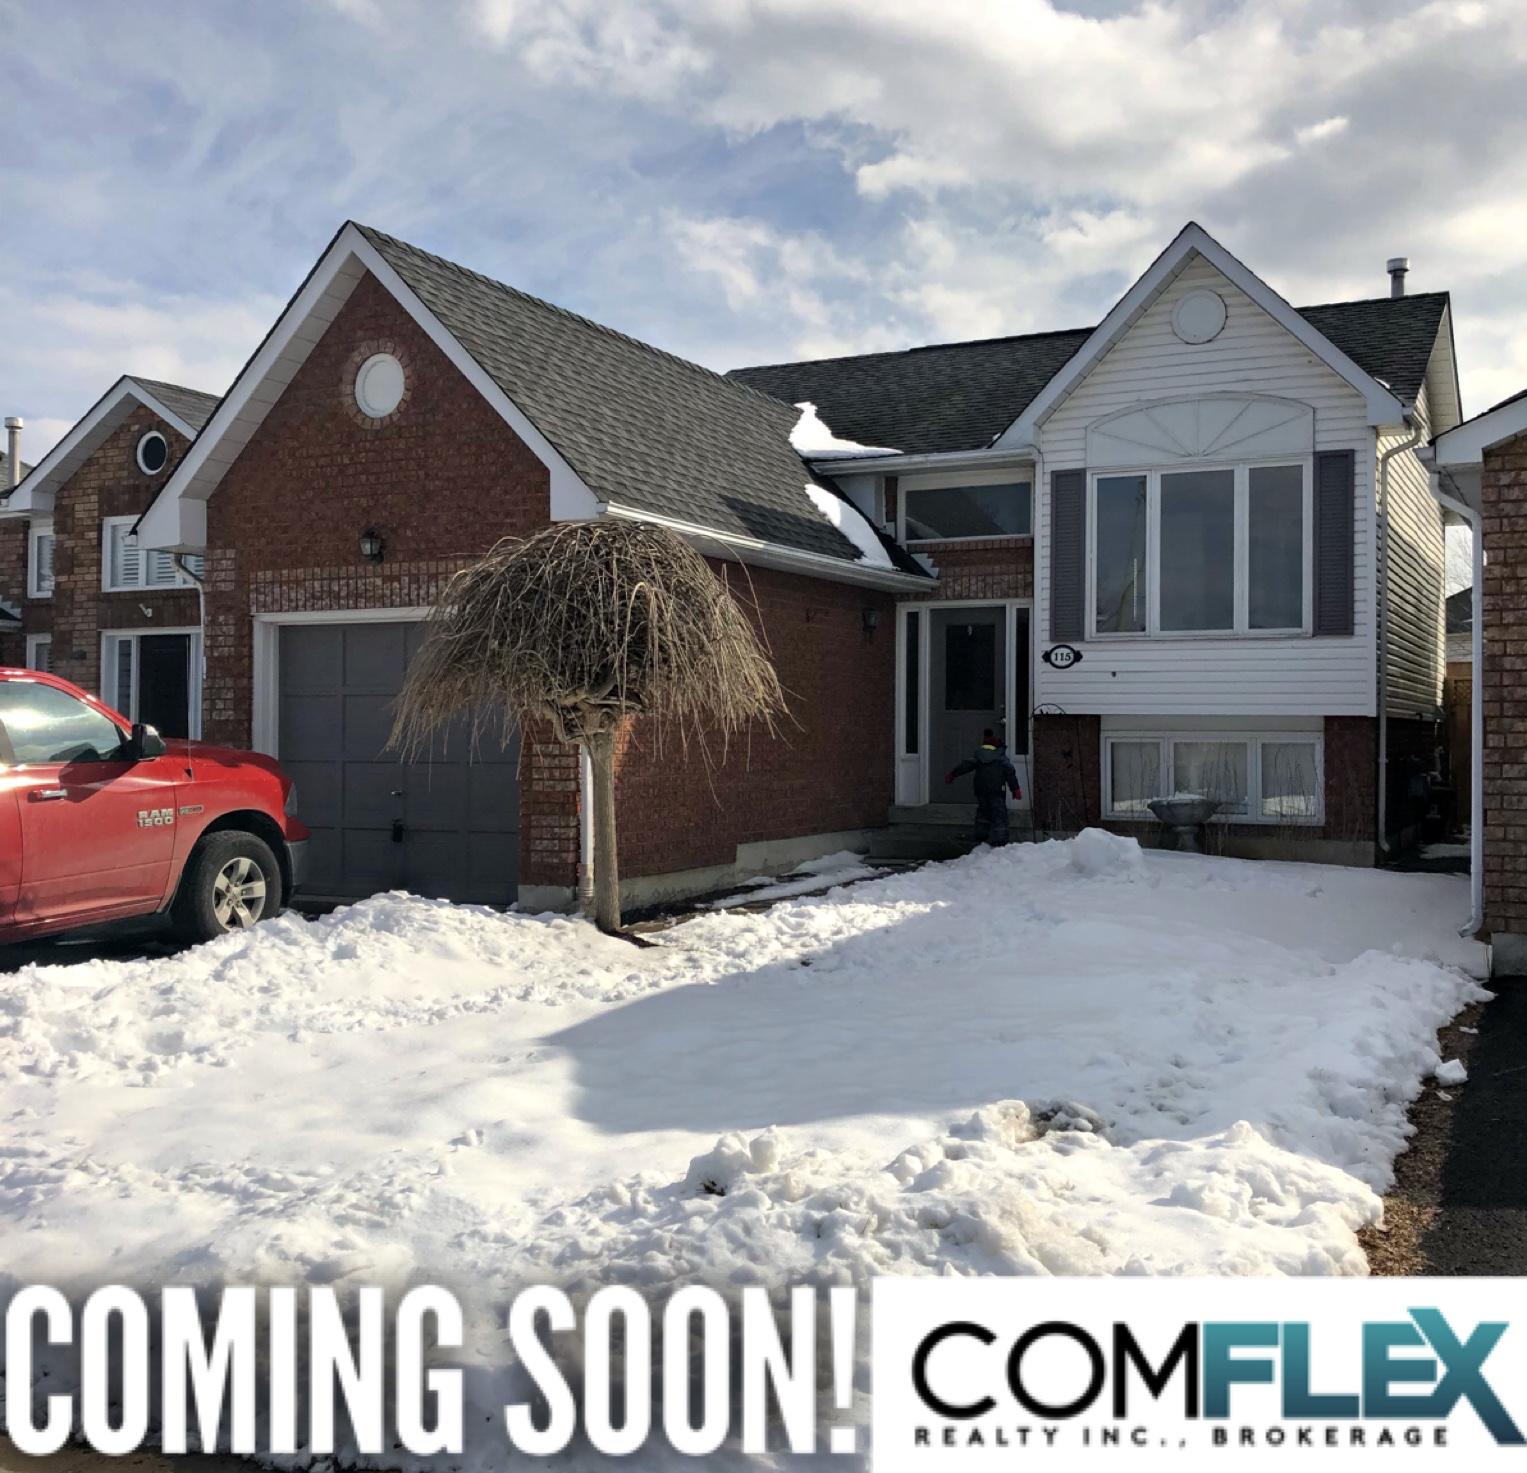 COMING SOON TO BOWMANVILLE! THESE CLIENTS ARE READY TO SAVE MORE!